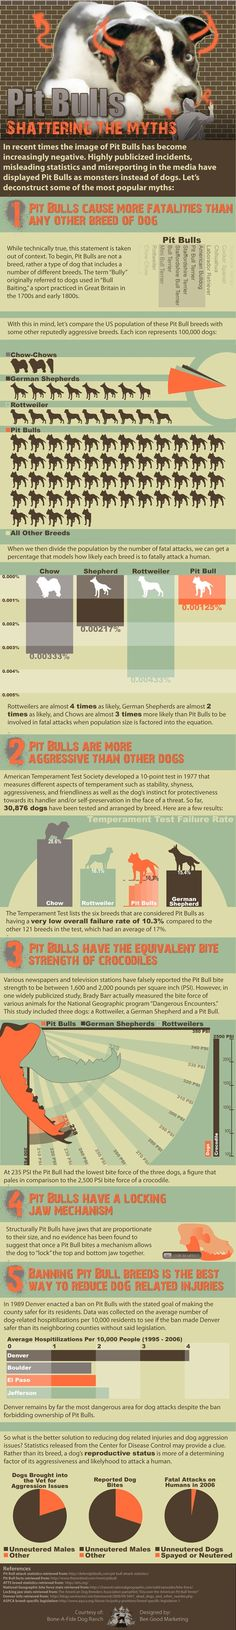 Pit Bull Myths Shattered Infographic